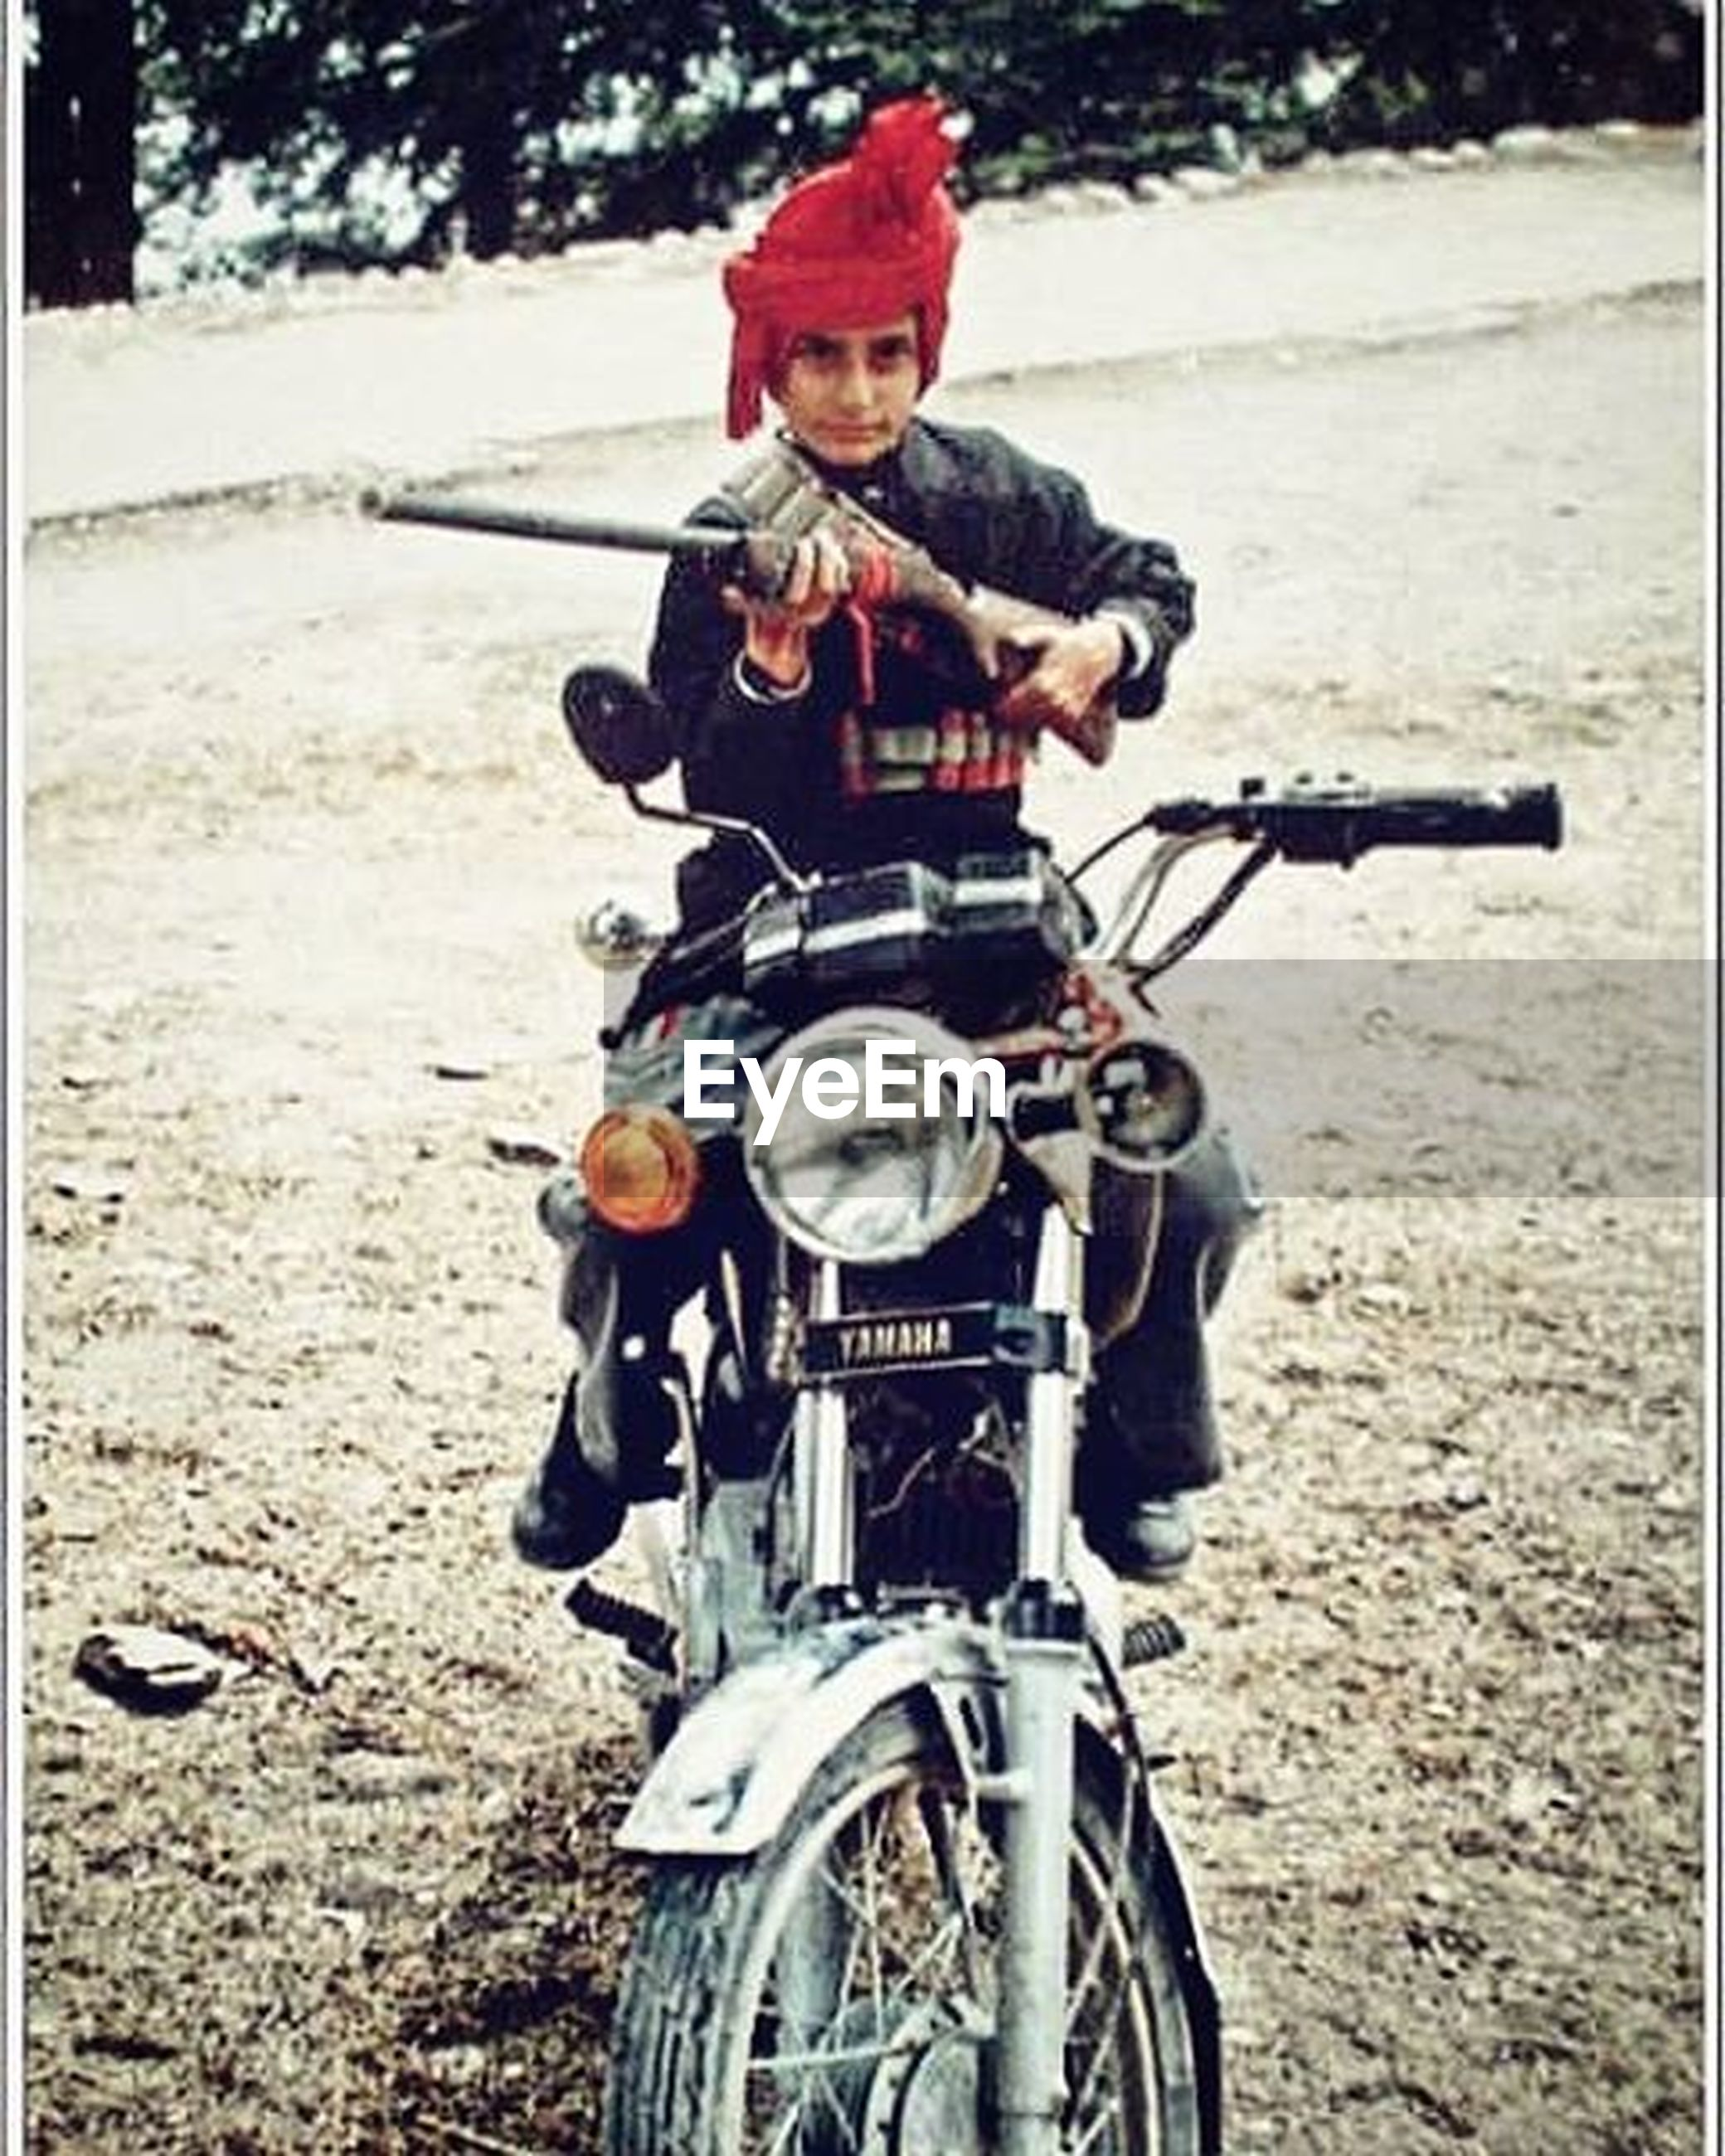 mode of transport, transportation, land vehicle, bicycle, helmet, stationary, day, motorcycle, outdoors, travel, parking, headwear, sunlight, front view, full length, field, equipment, riding